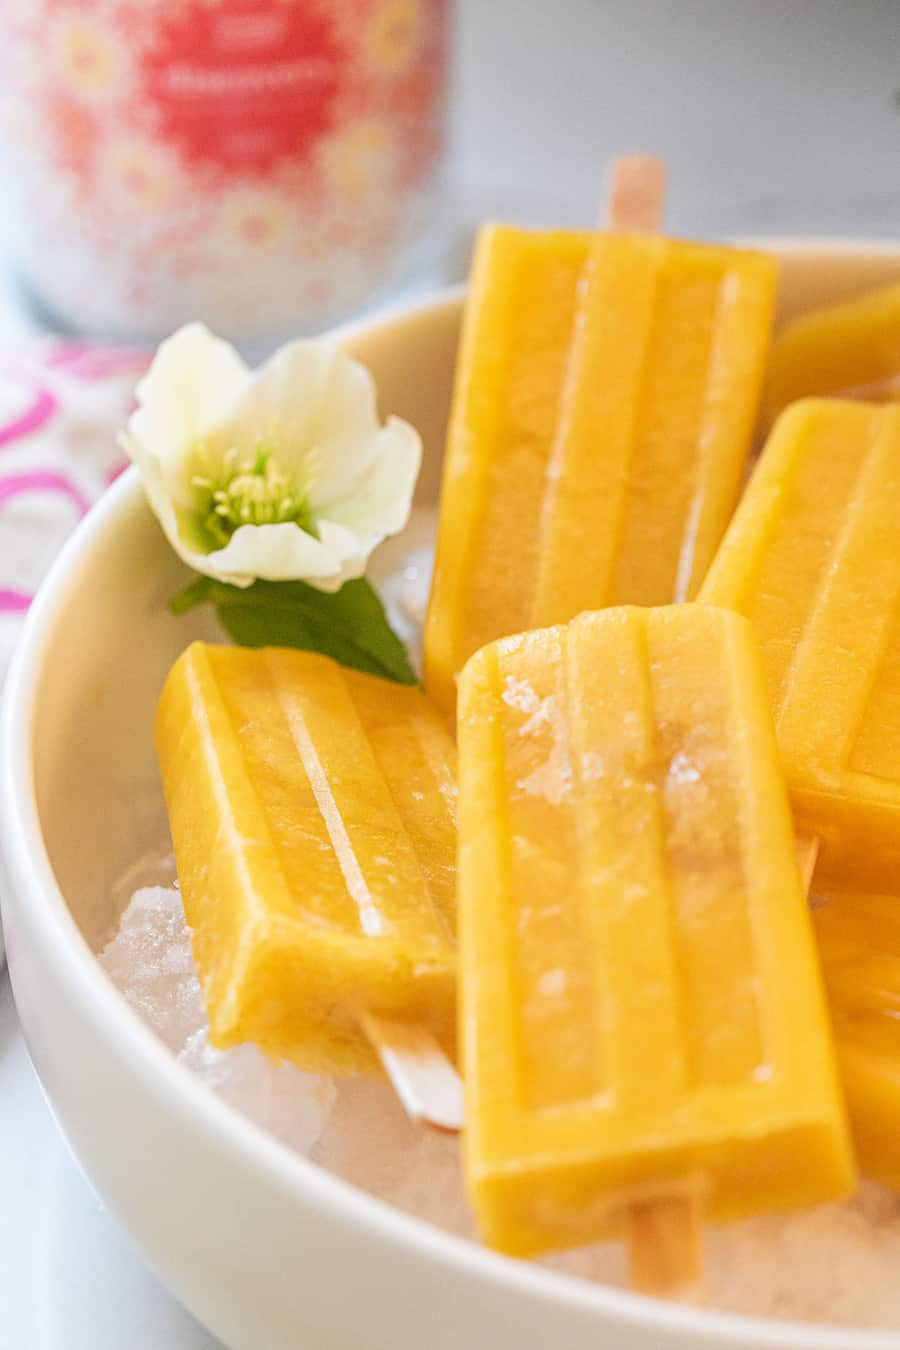 Mango popsicles on ice with flower